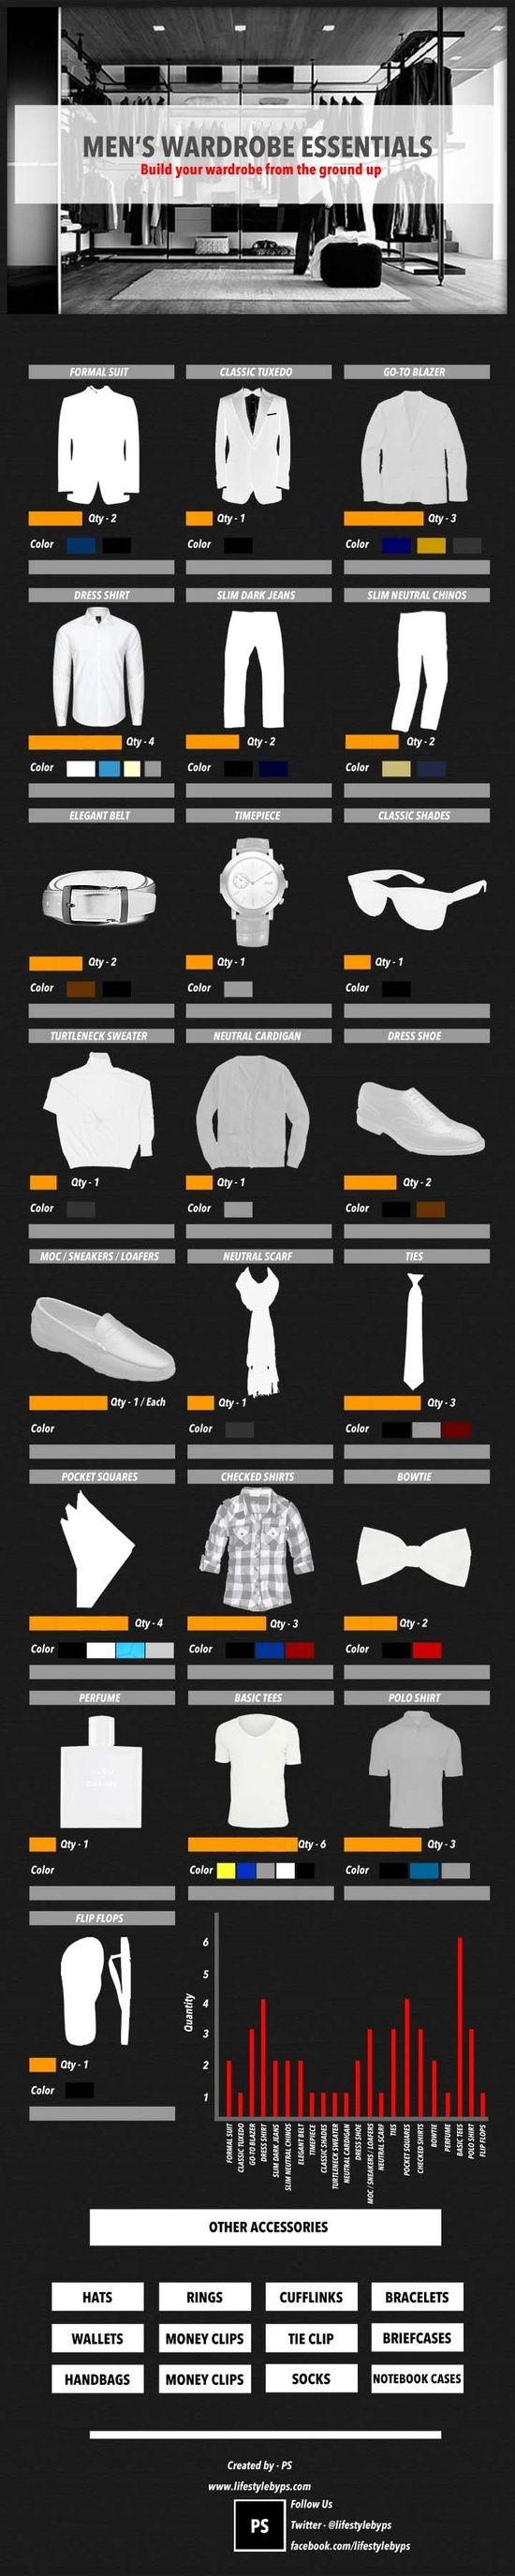 Build your wardrobe from the ground up - wardrobe essentials Men - Infographic